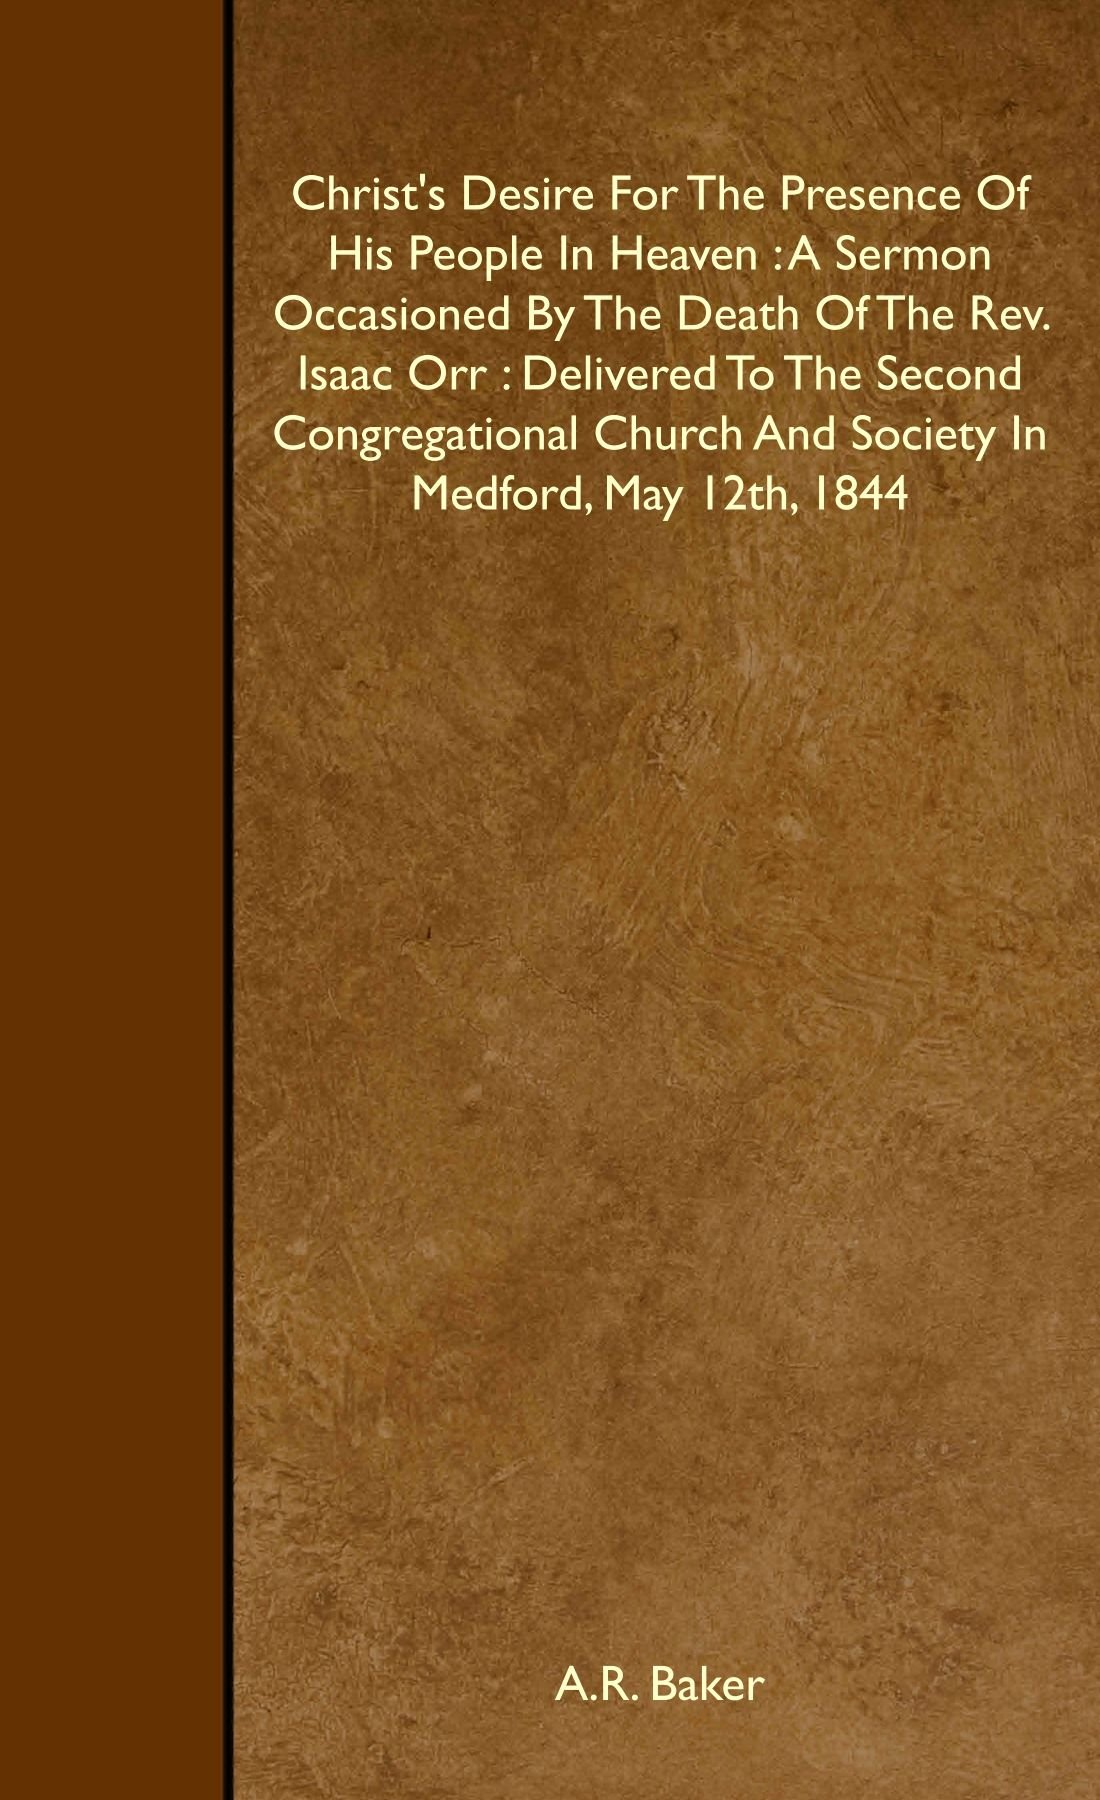 Read Online Christ's Desire For The Presence Of His People In Heaven : A Sermon Occasioned By The Death Of The Rev. Isaac Orr : Delivered To The Second Congregational Church And Society In Medford, May 12th, 1844 ebook